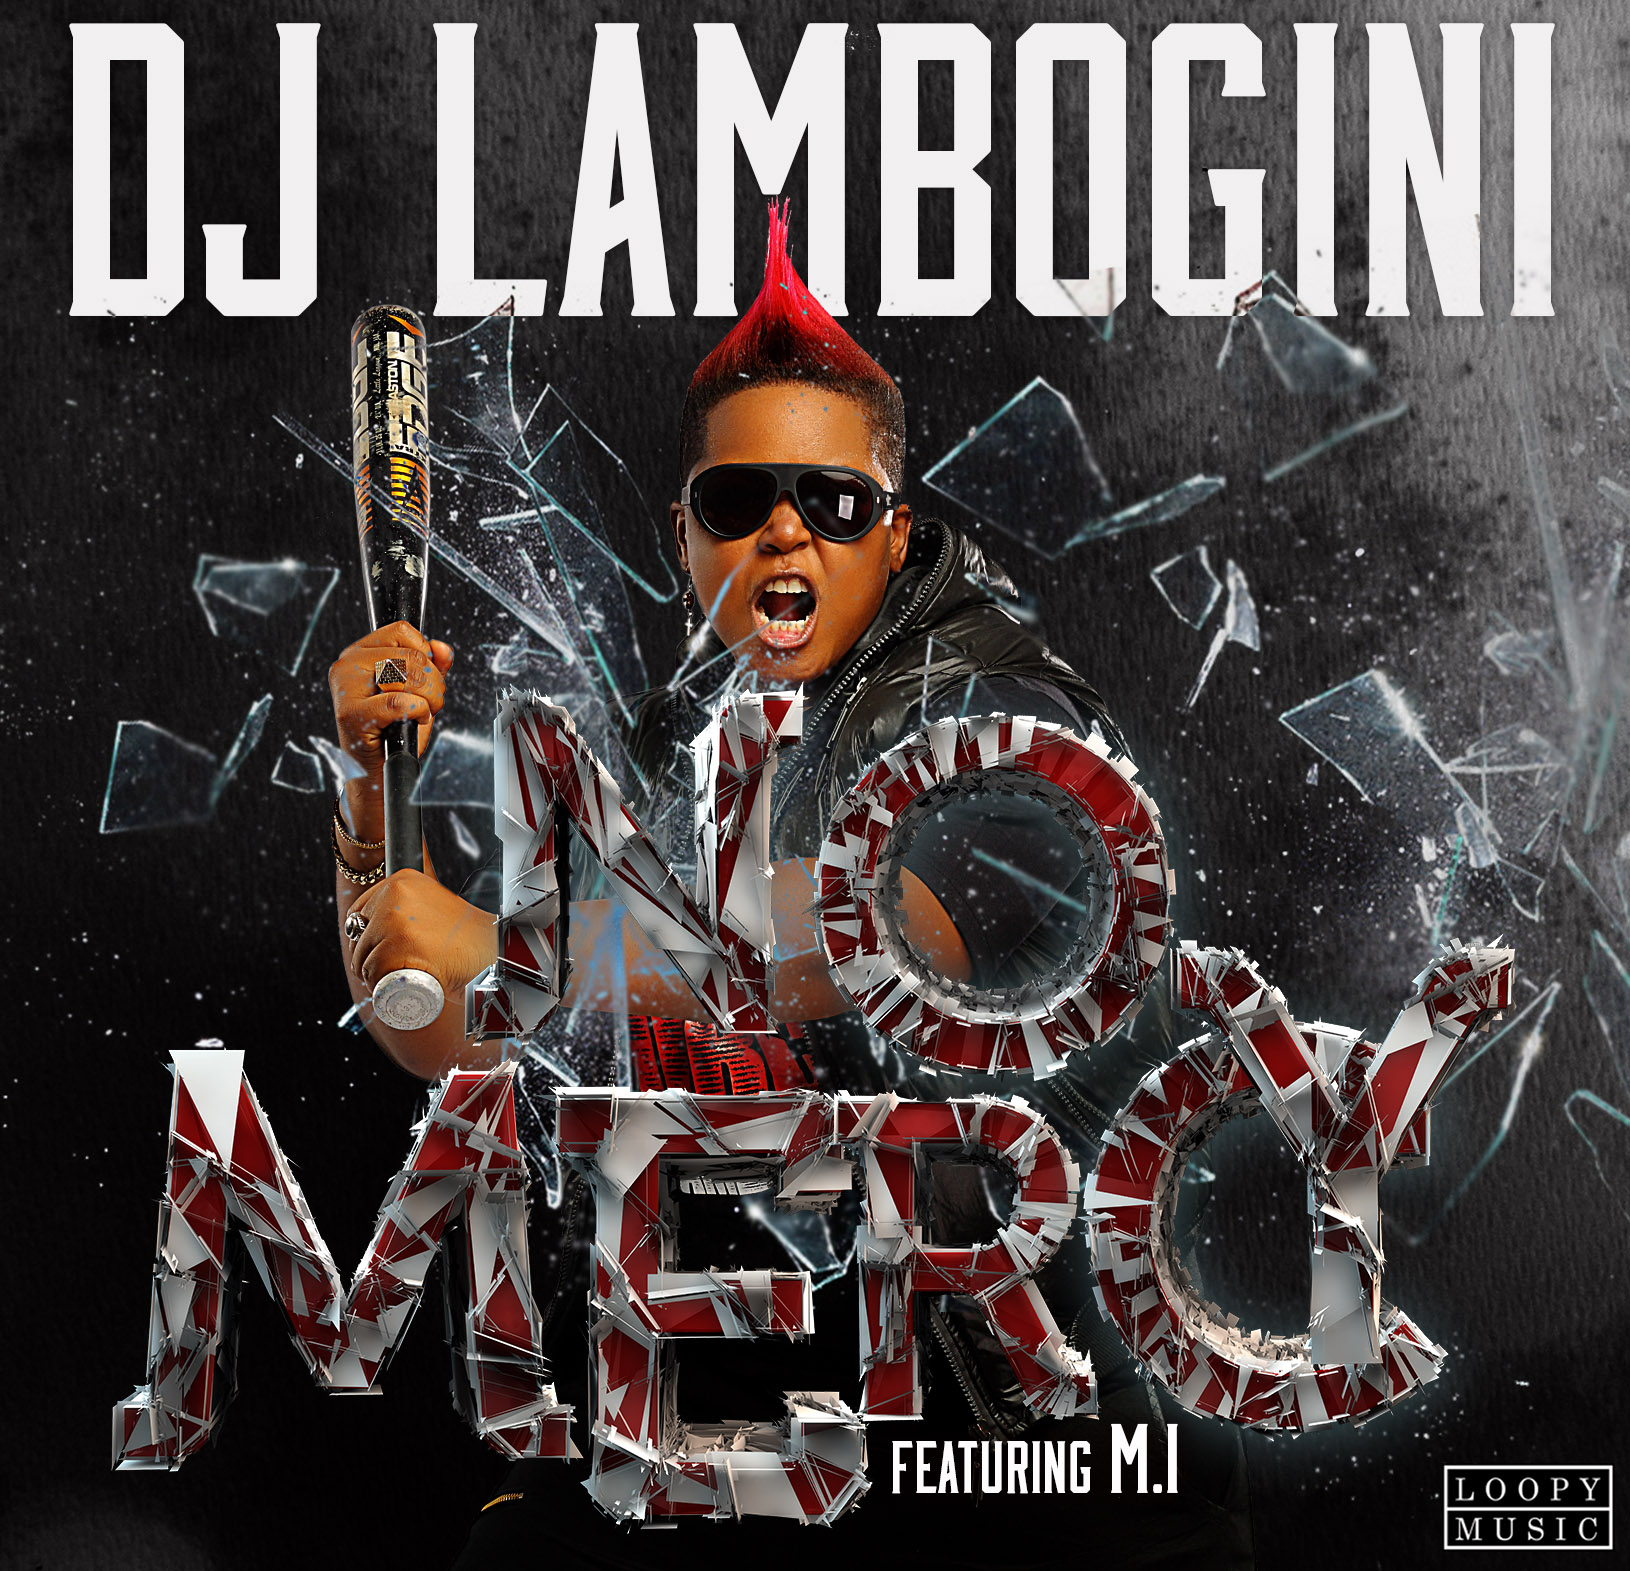 DJ LAMBO no mercy